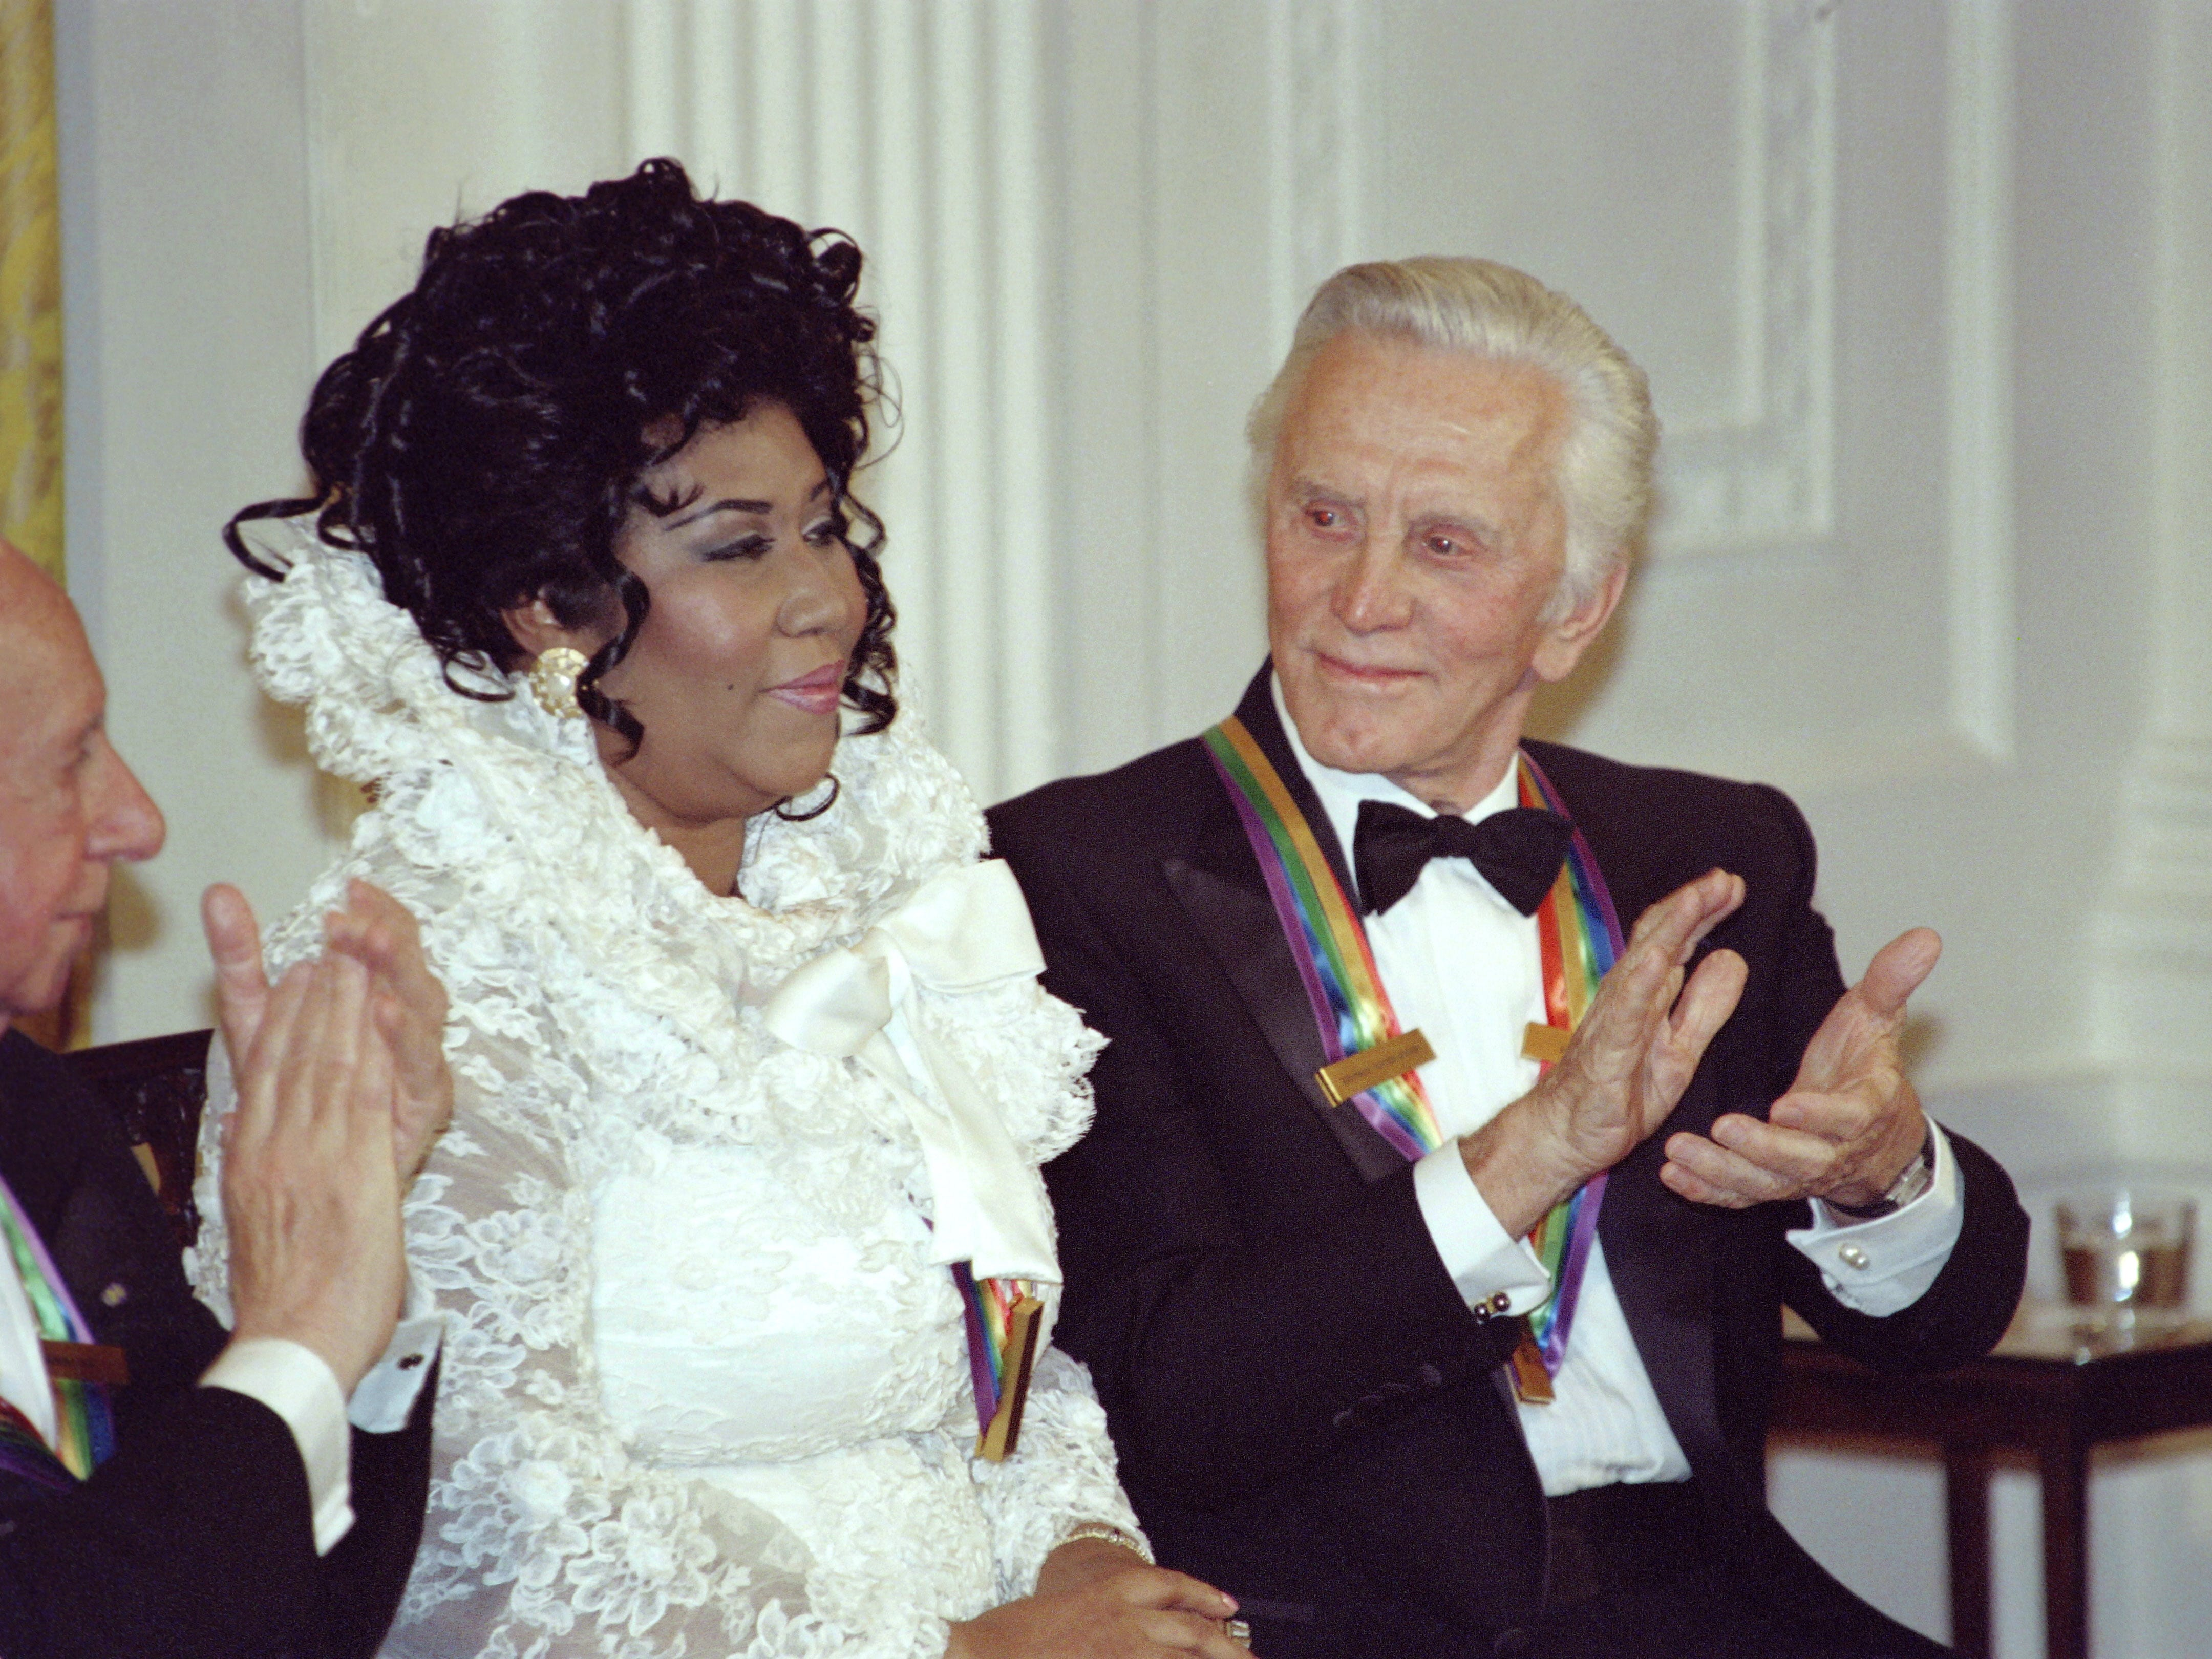 US actor Kirk Douglas (R) applauds singer Aretha Franklin at a reception for the Kennedy Center Honors on December 04, 1994 at the White House in Washington DC. The Kennedy Center Honors recognizes American performance artists who have made lifetime contributions to American culture. Person at left is unidentified. AFP PHOTO JOSHUA ROBERTS (Photo credit should read JOSHUA ROBERTS/AFP/Getty Images)